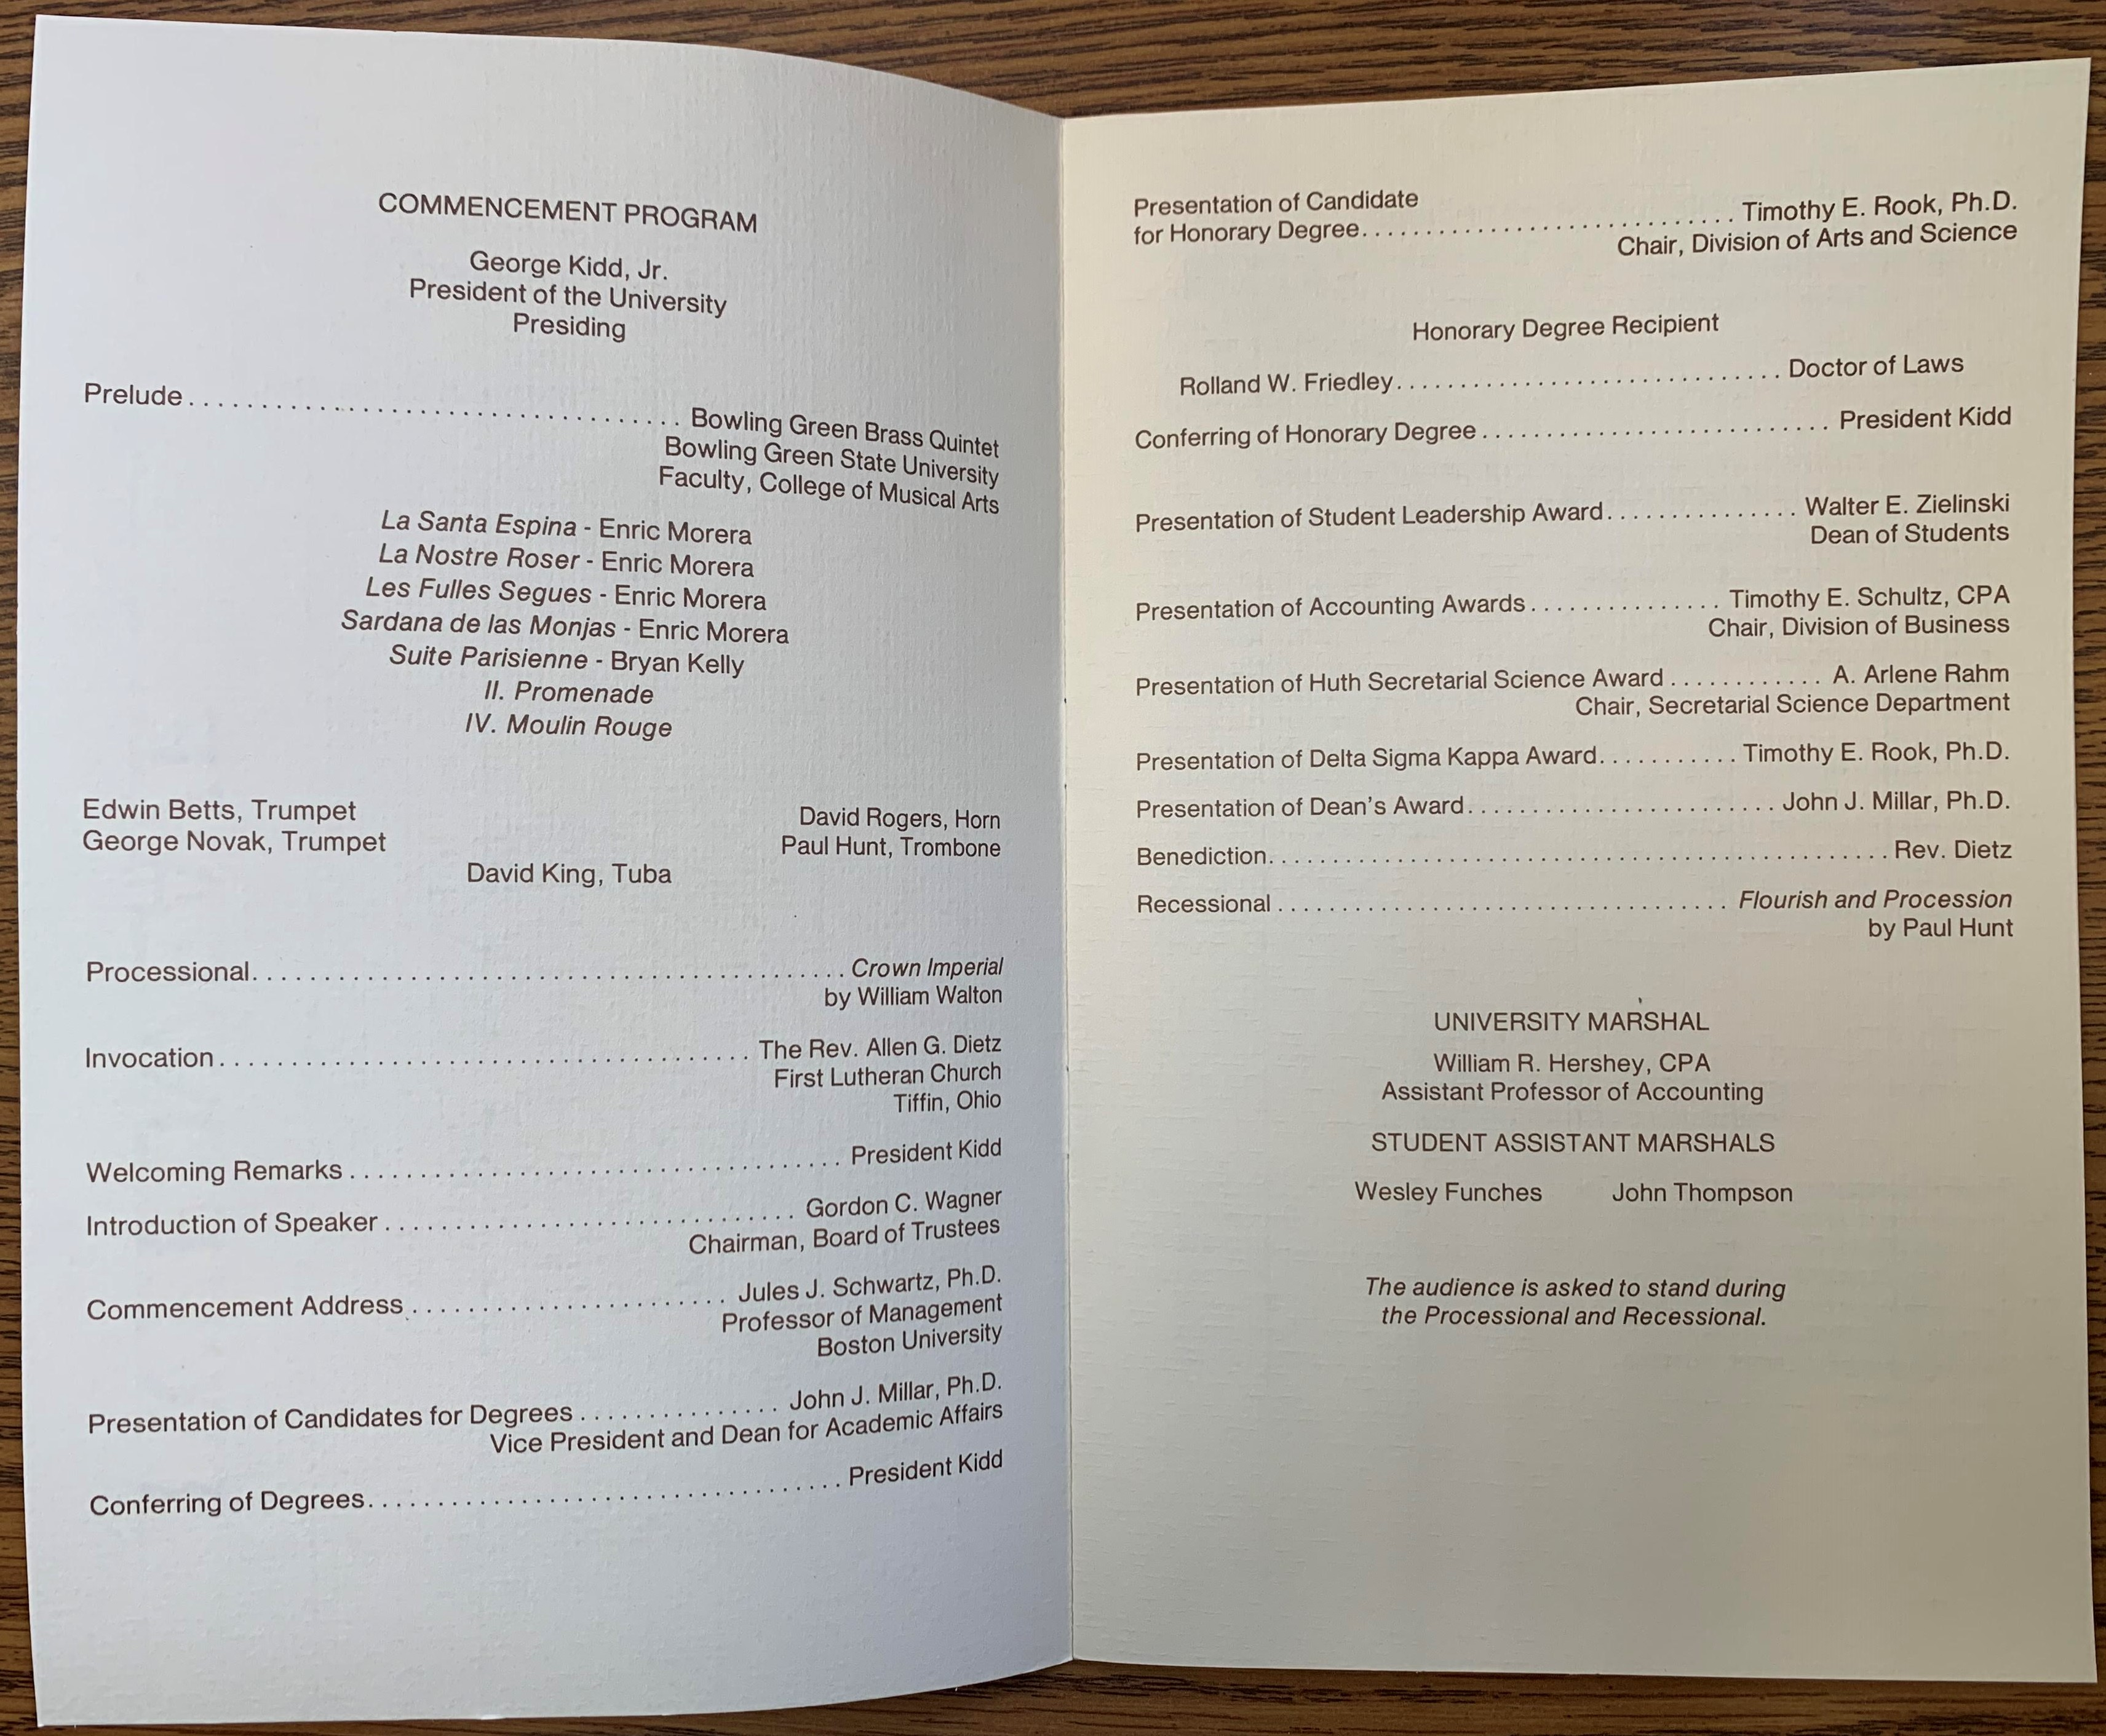 commencement program schedule 1988